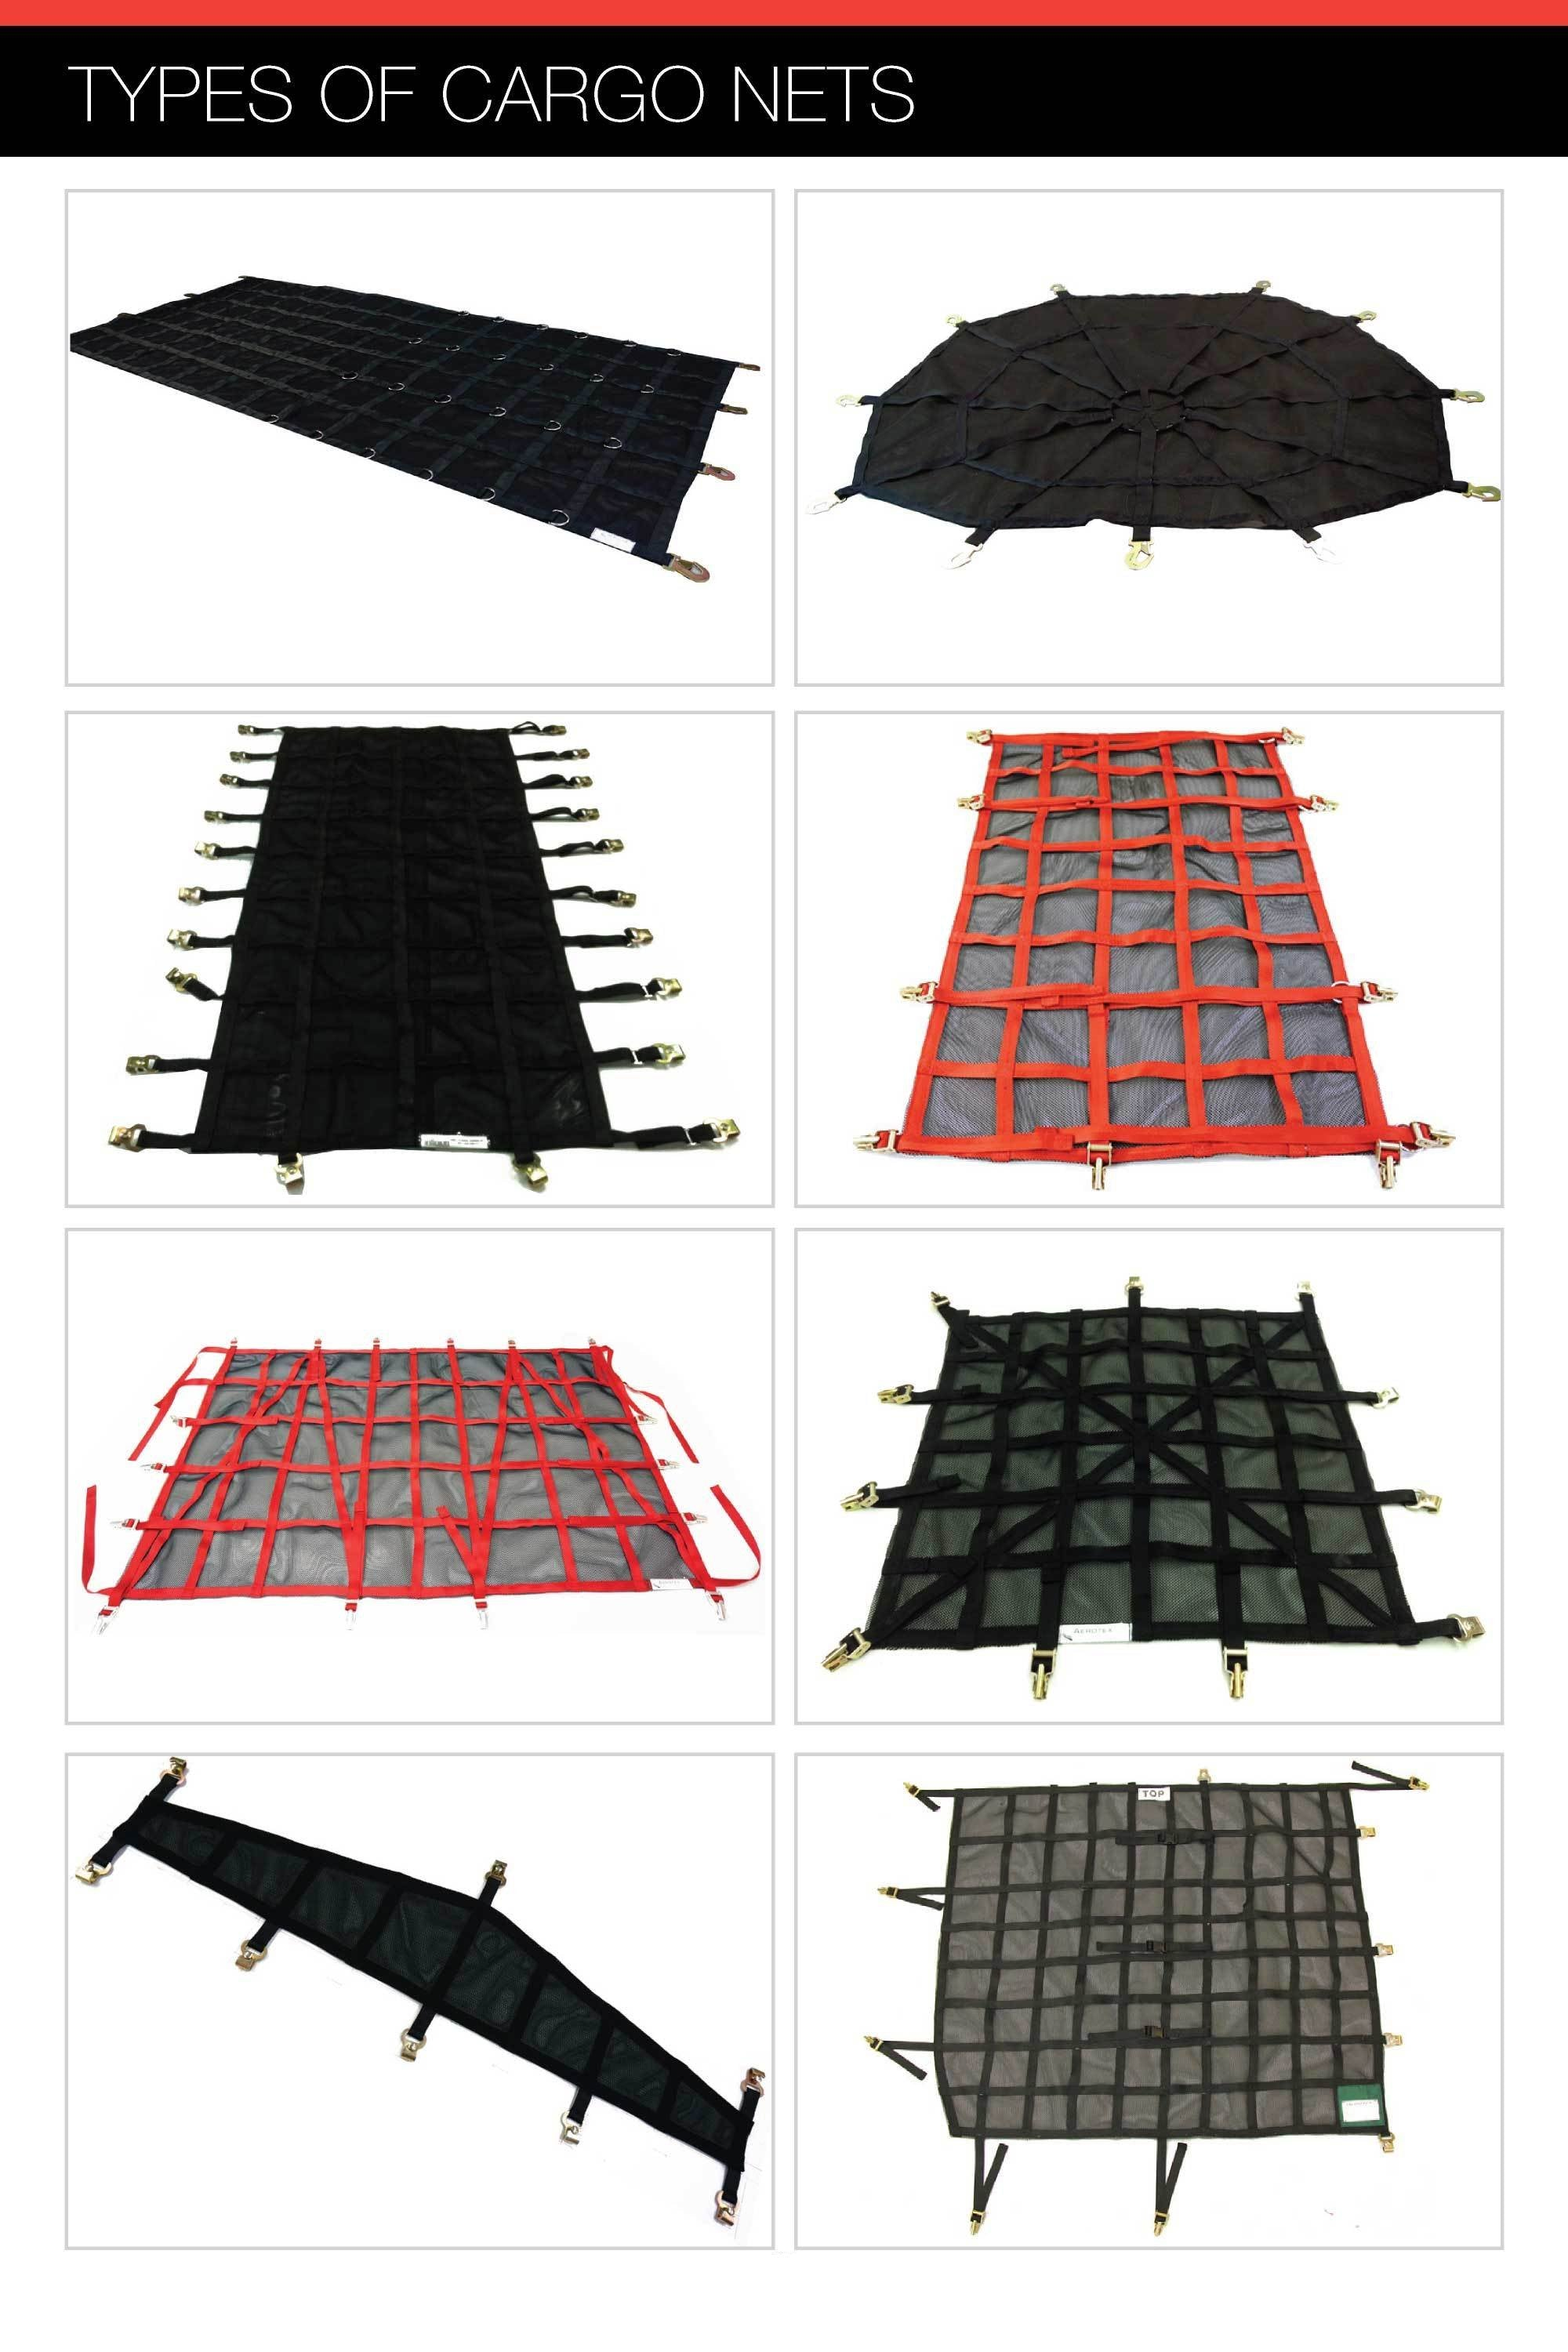 Types of Aircraft Cargo Nets